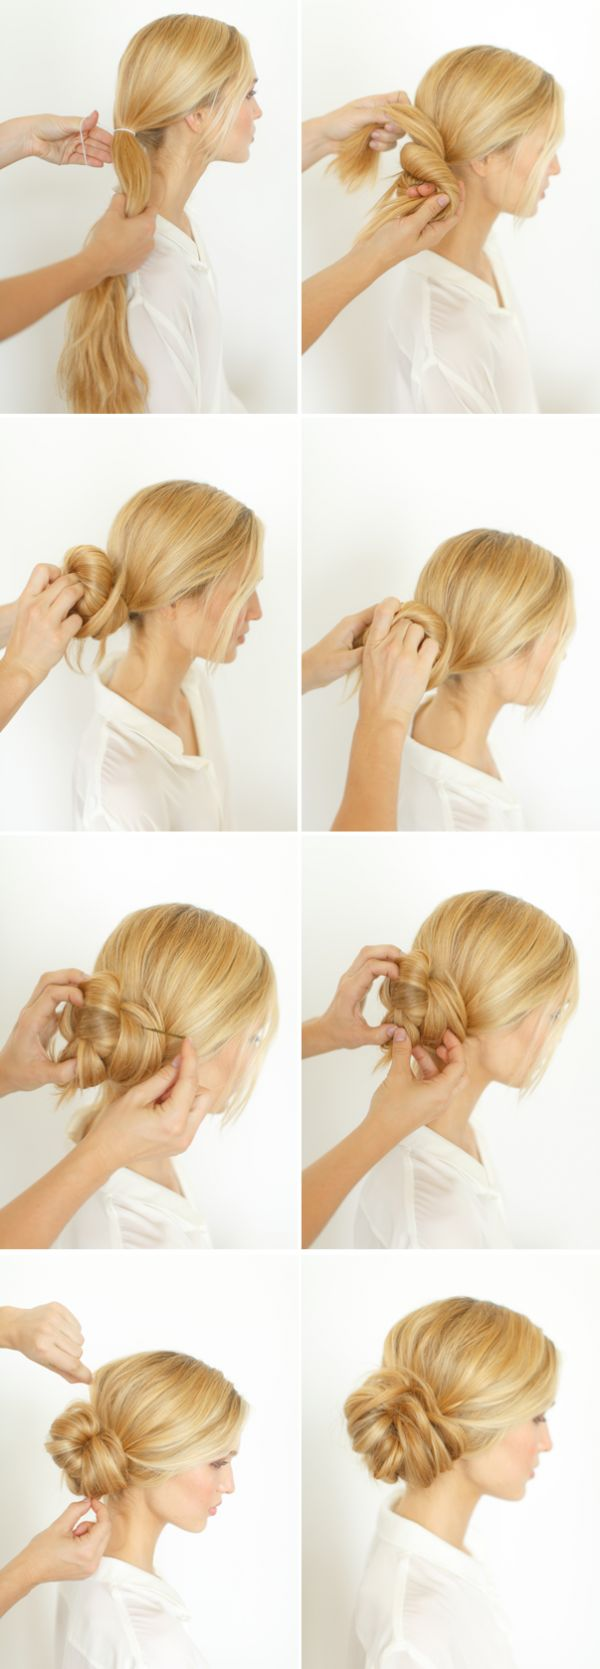 173 best hairstyles for every1 images on pinterest coiffure you will get here 20 messy side bun hairstyle changed and dramatic look find the best one for you simple and easy messy side bun hairstyle for you solutioingenieria Choice Image